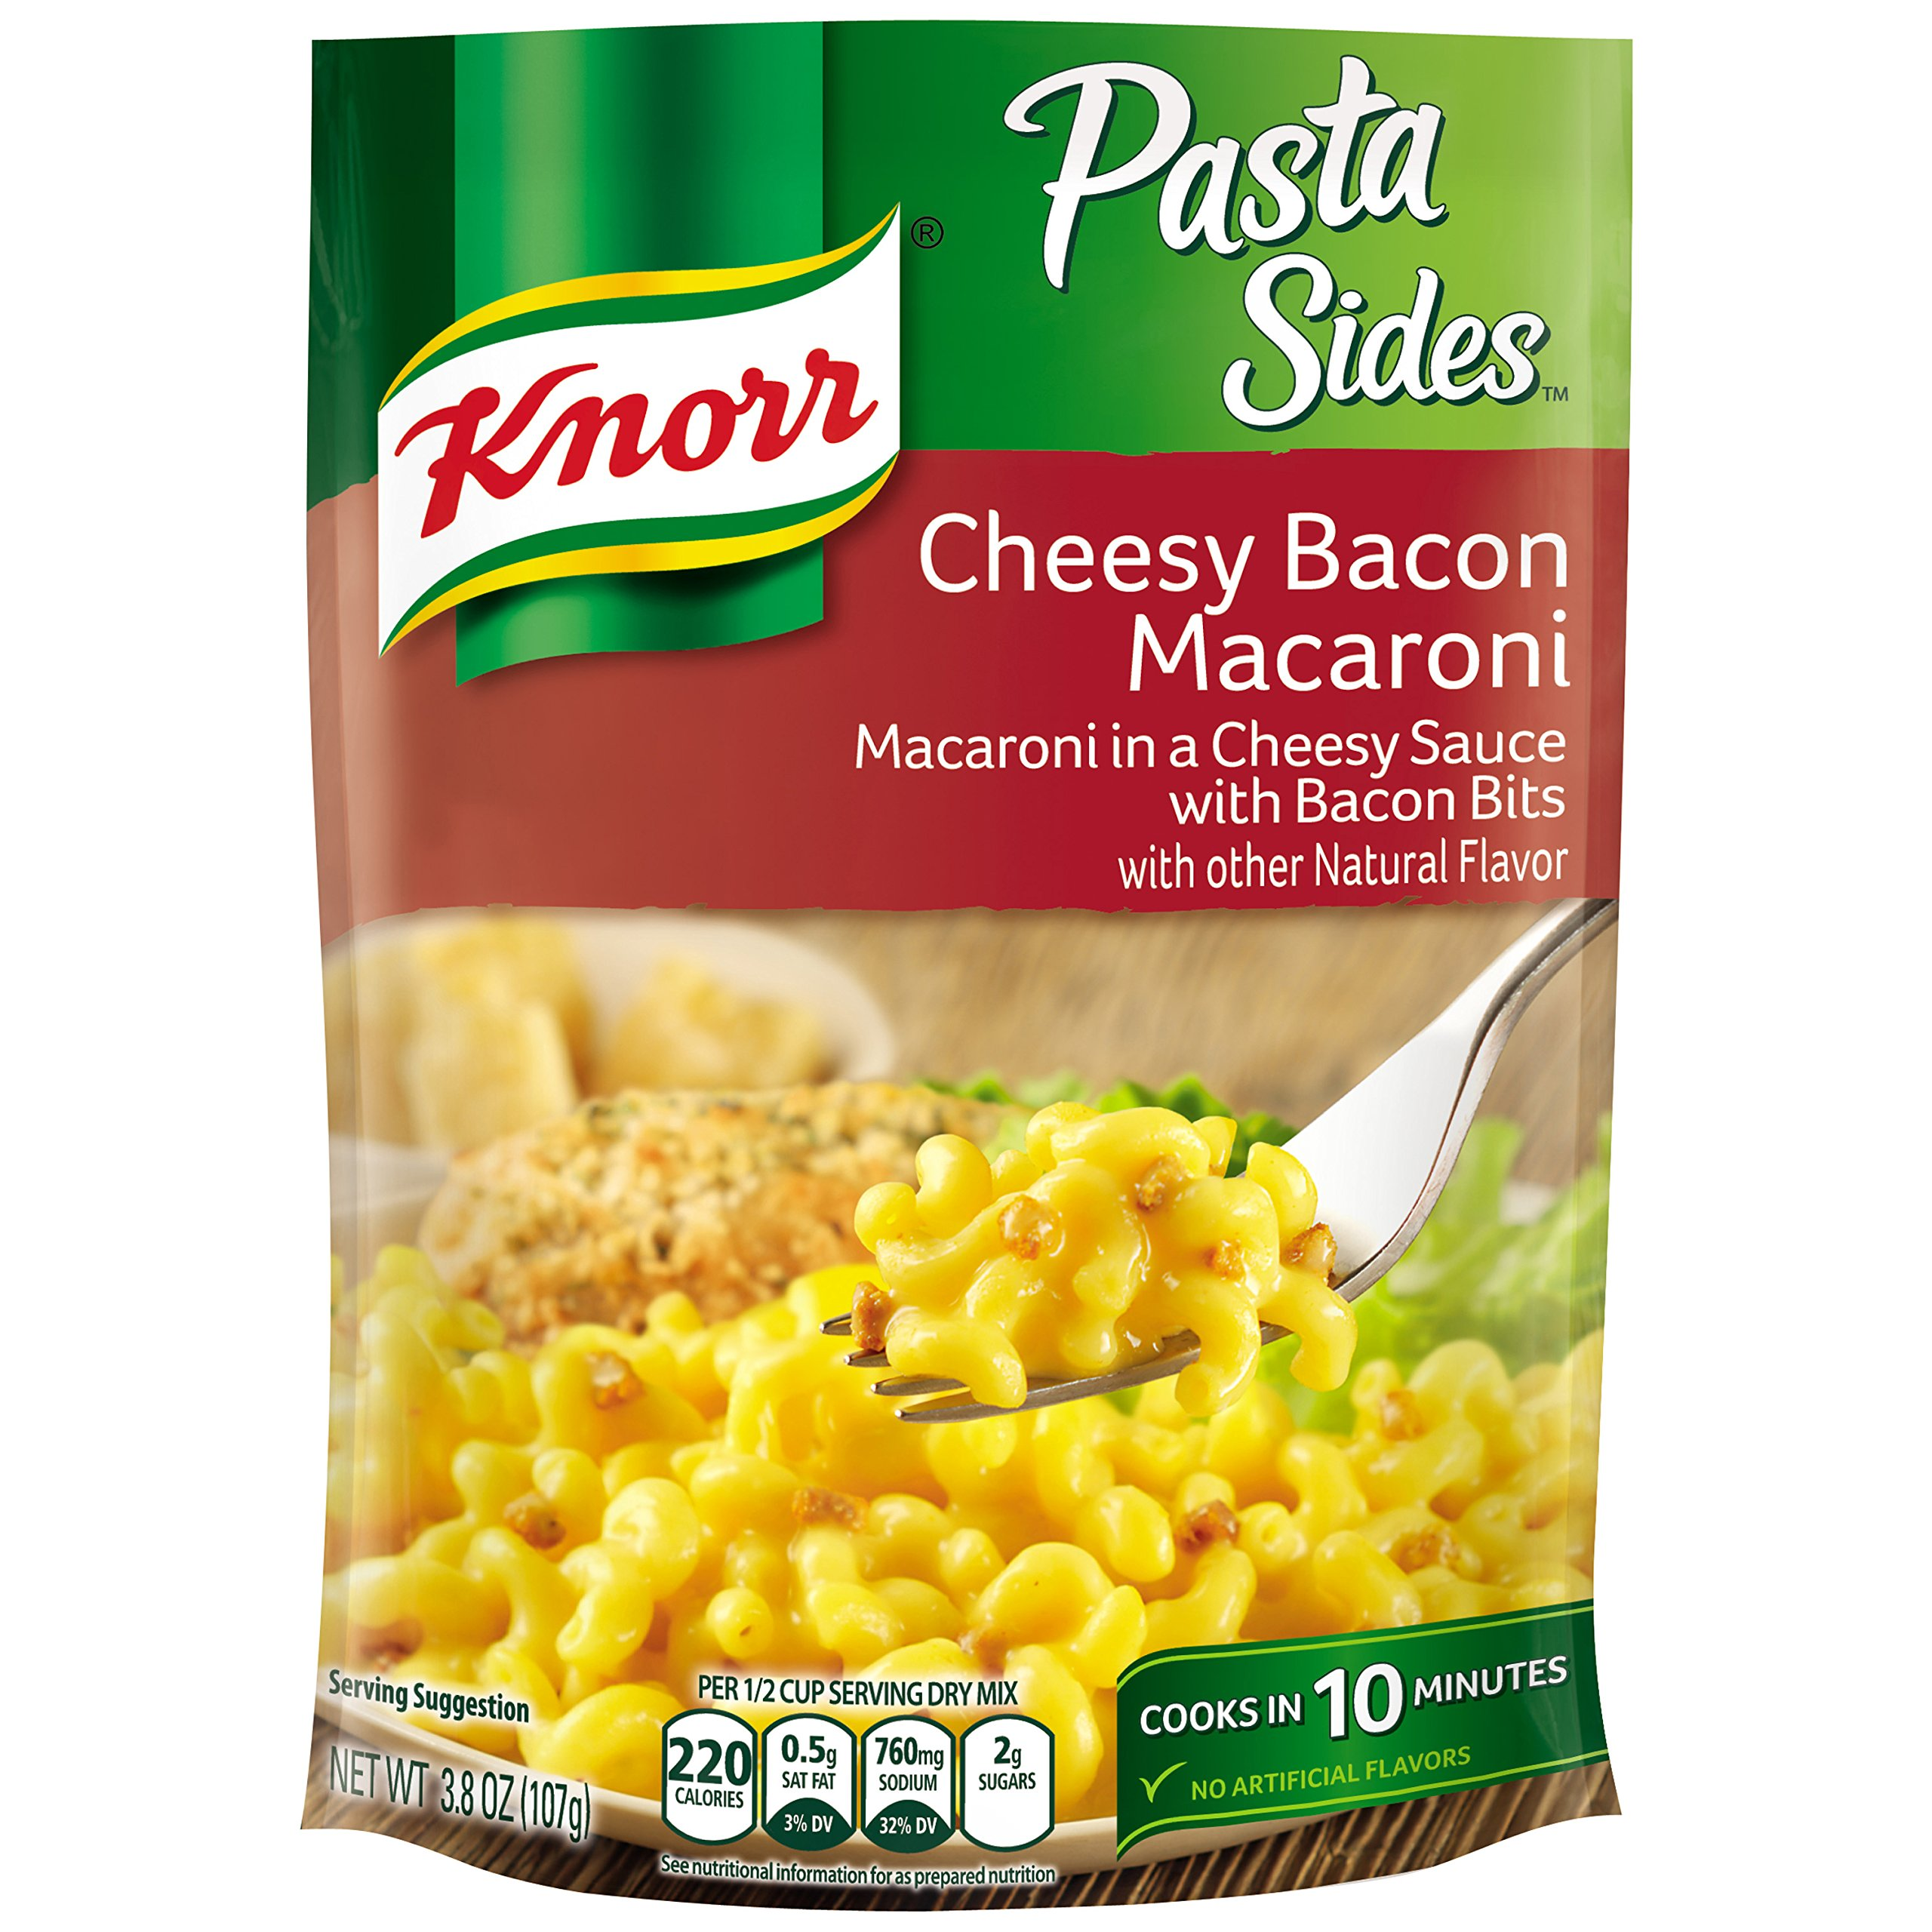 Knorr Pasta Sides Pasta Side Dish, Cheesy Bacon Macaroni, 3.8 oz